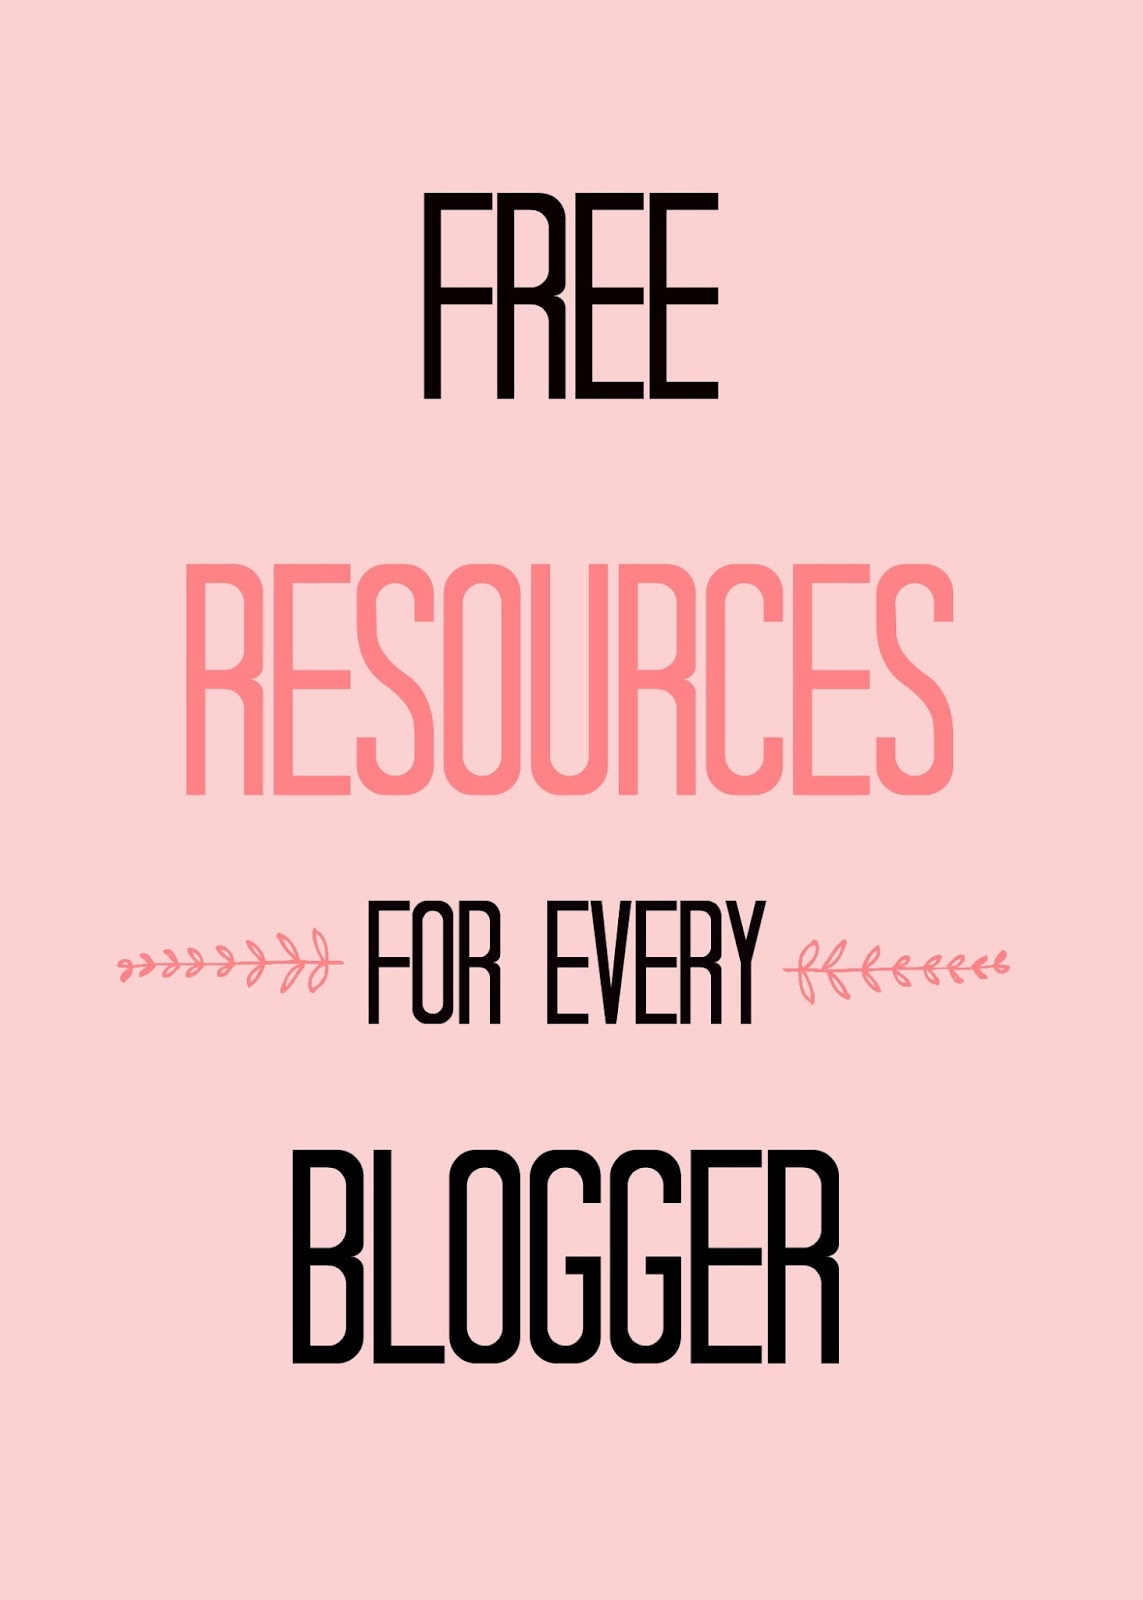 Useful & Free Resources For Every Blogger